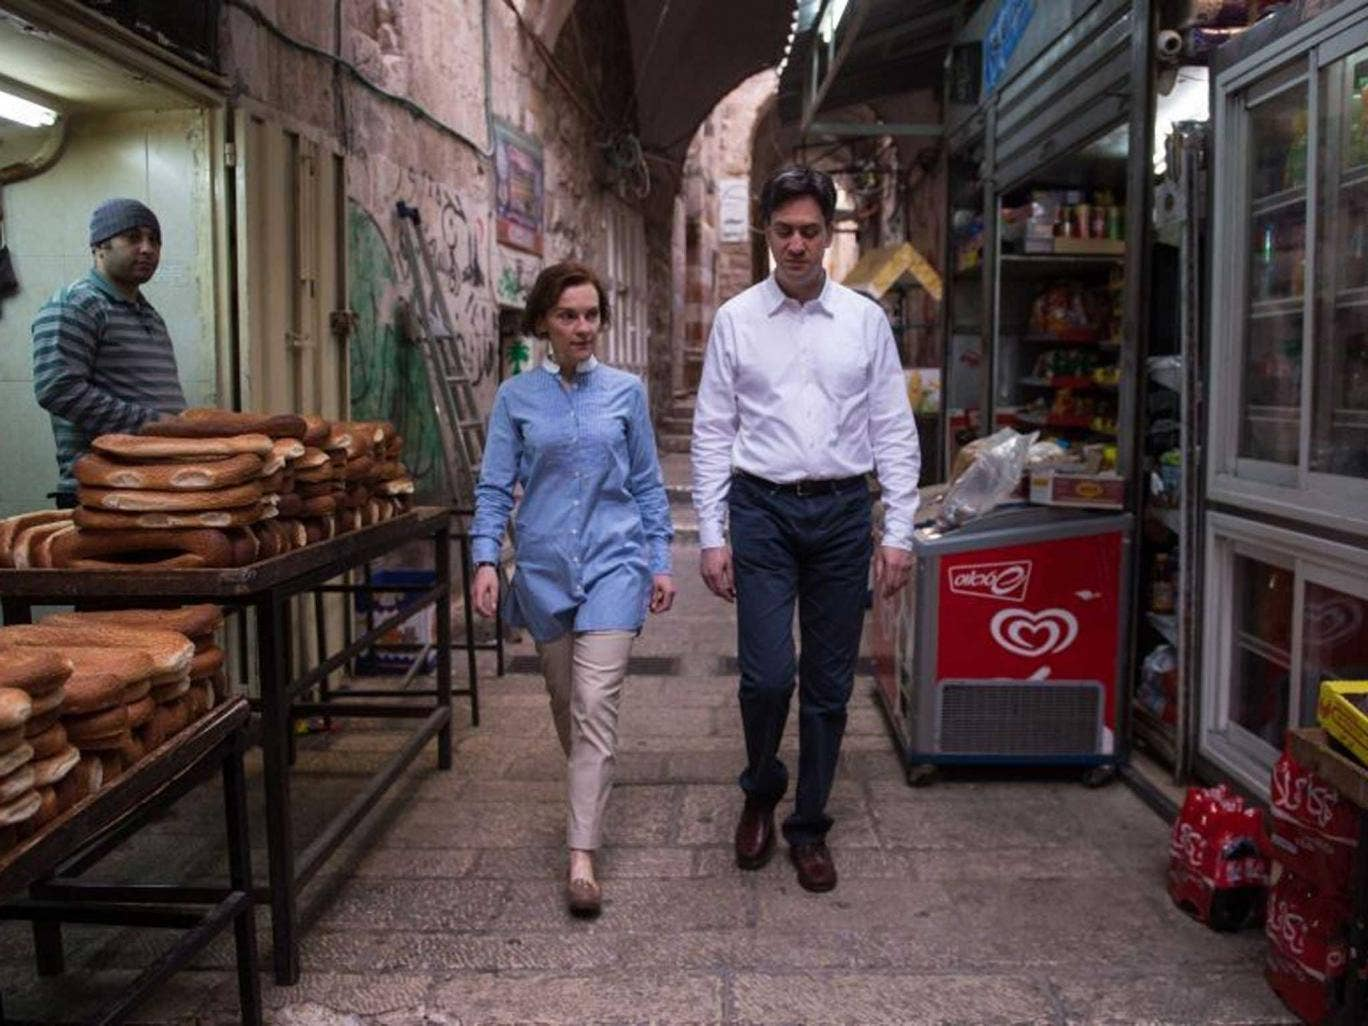 Ed Miliband and his wife in Jerusalem